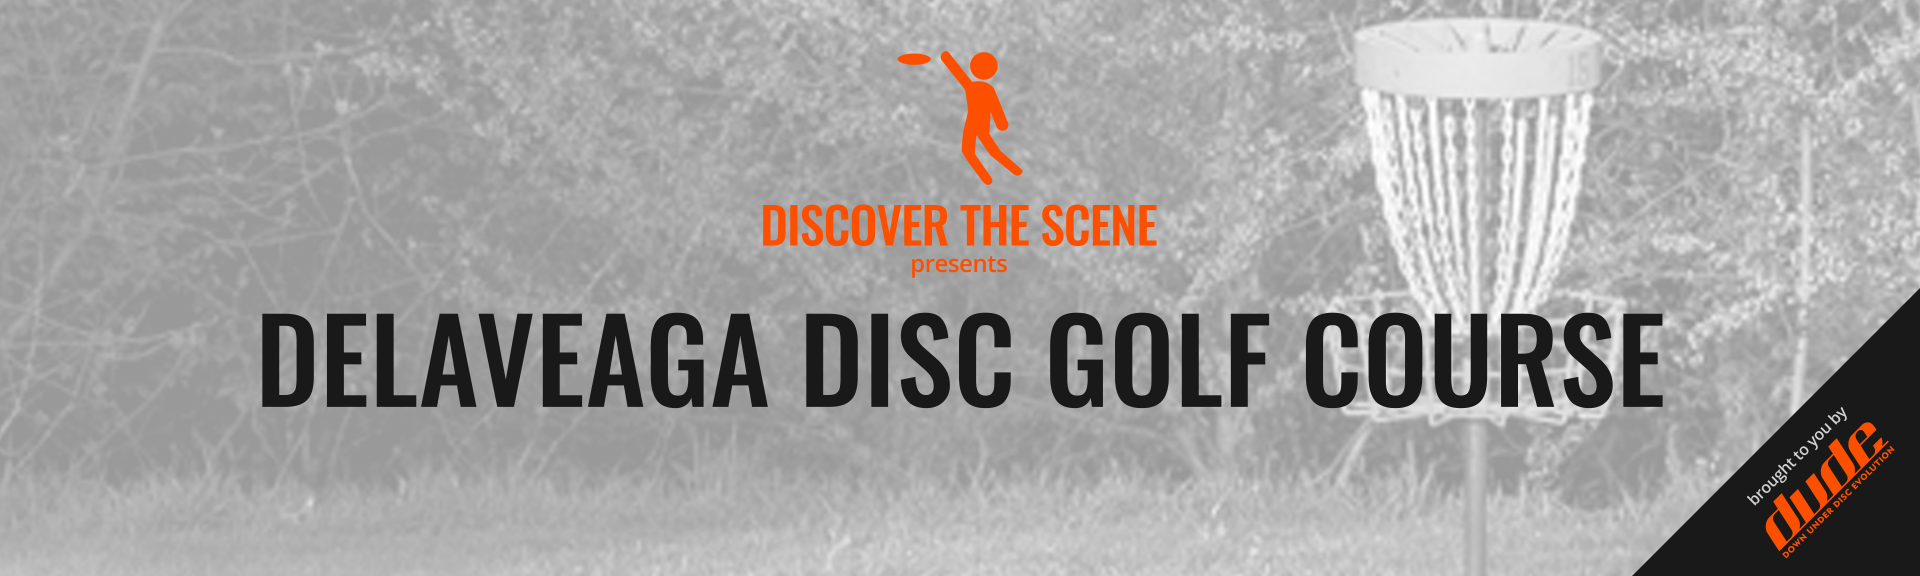 Dude Clothing Discover the Scene DelaVeaga Disc golf Course